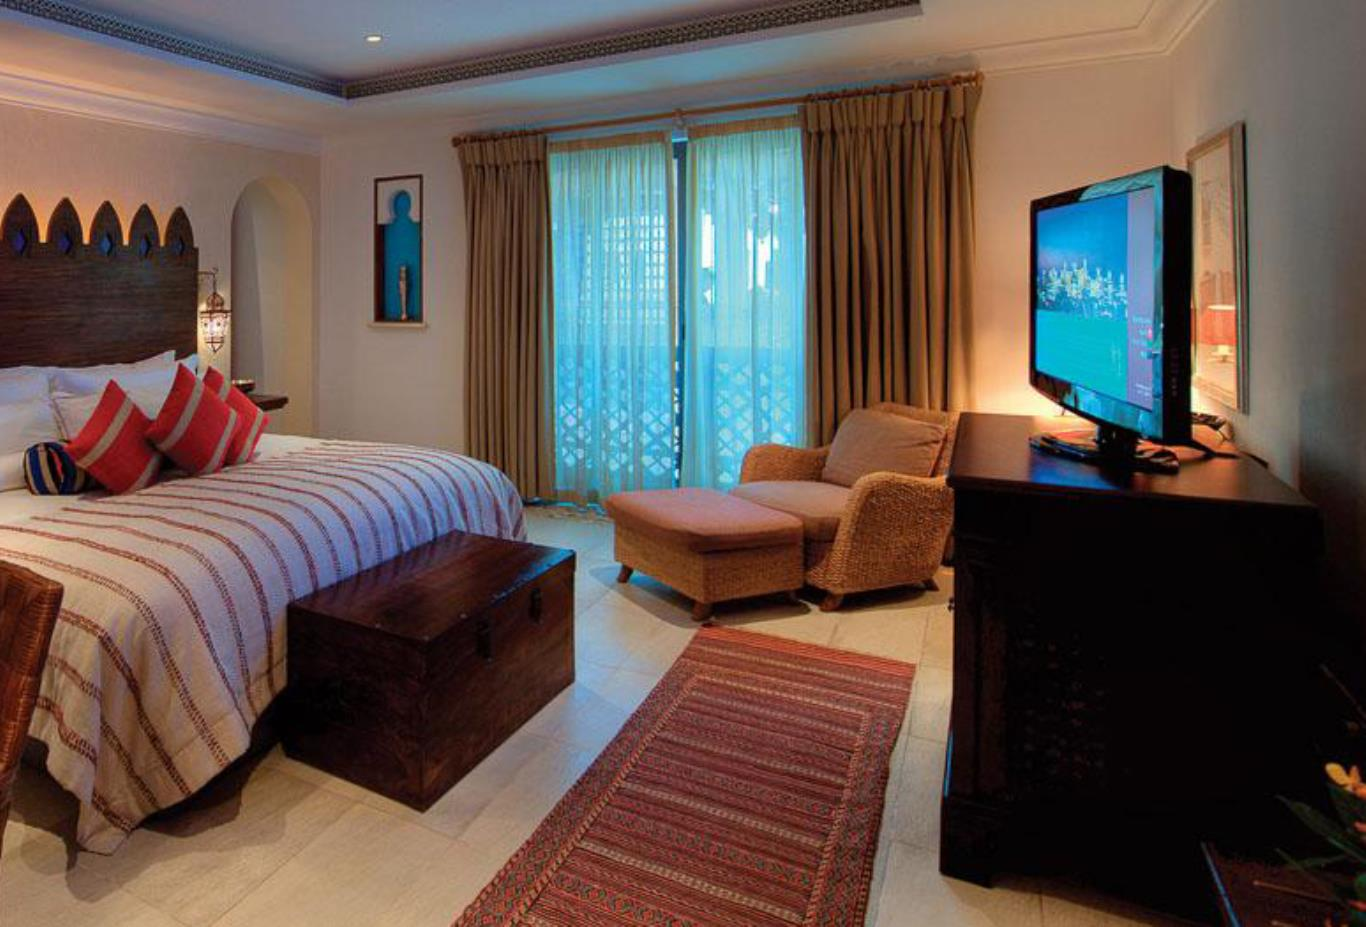 Malakiya-villas-king-room